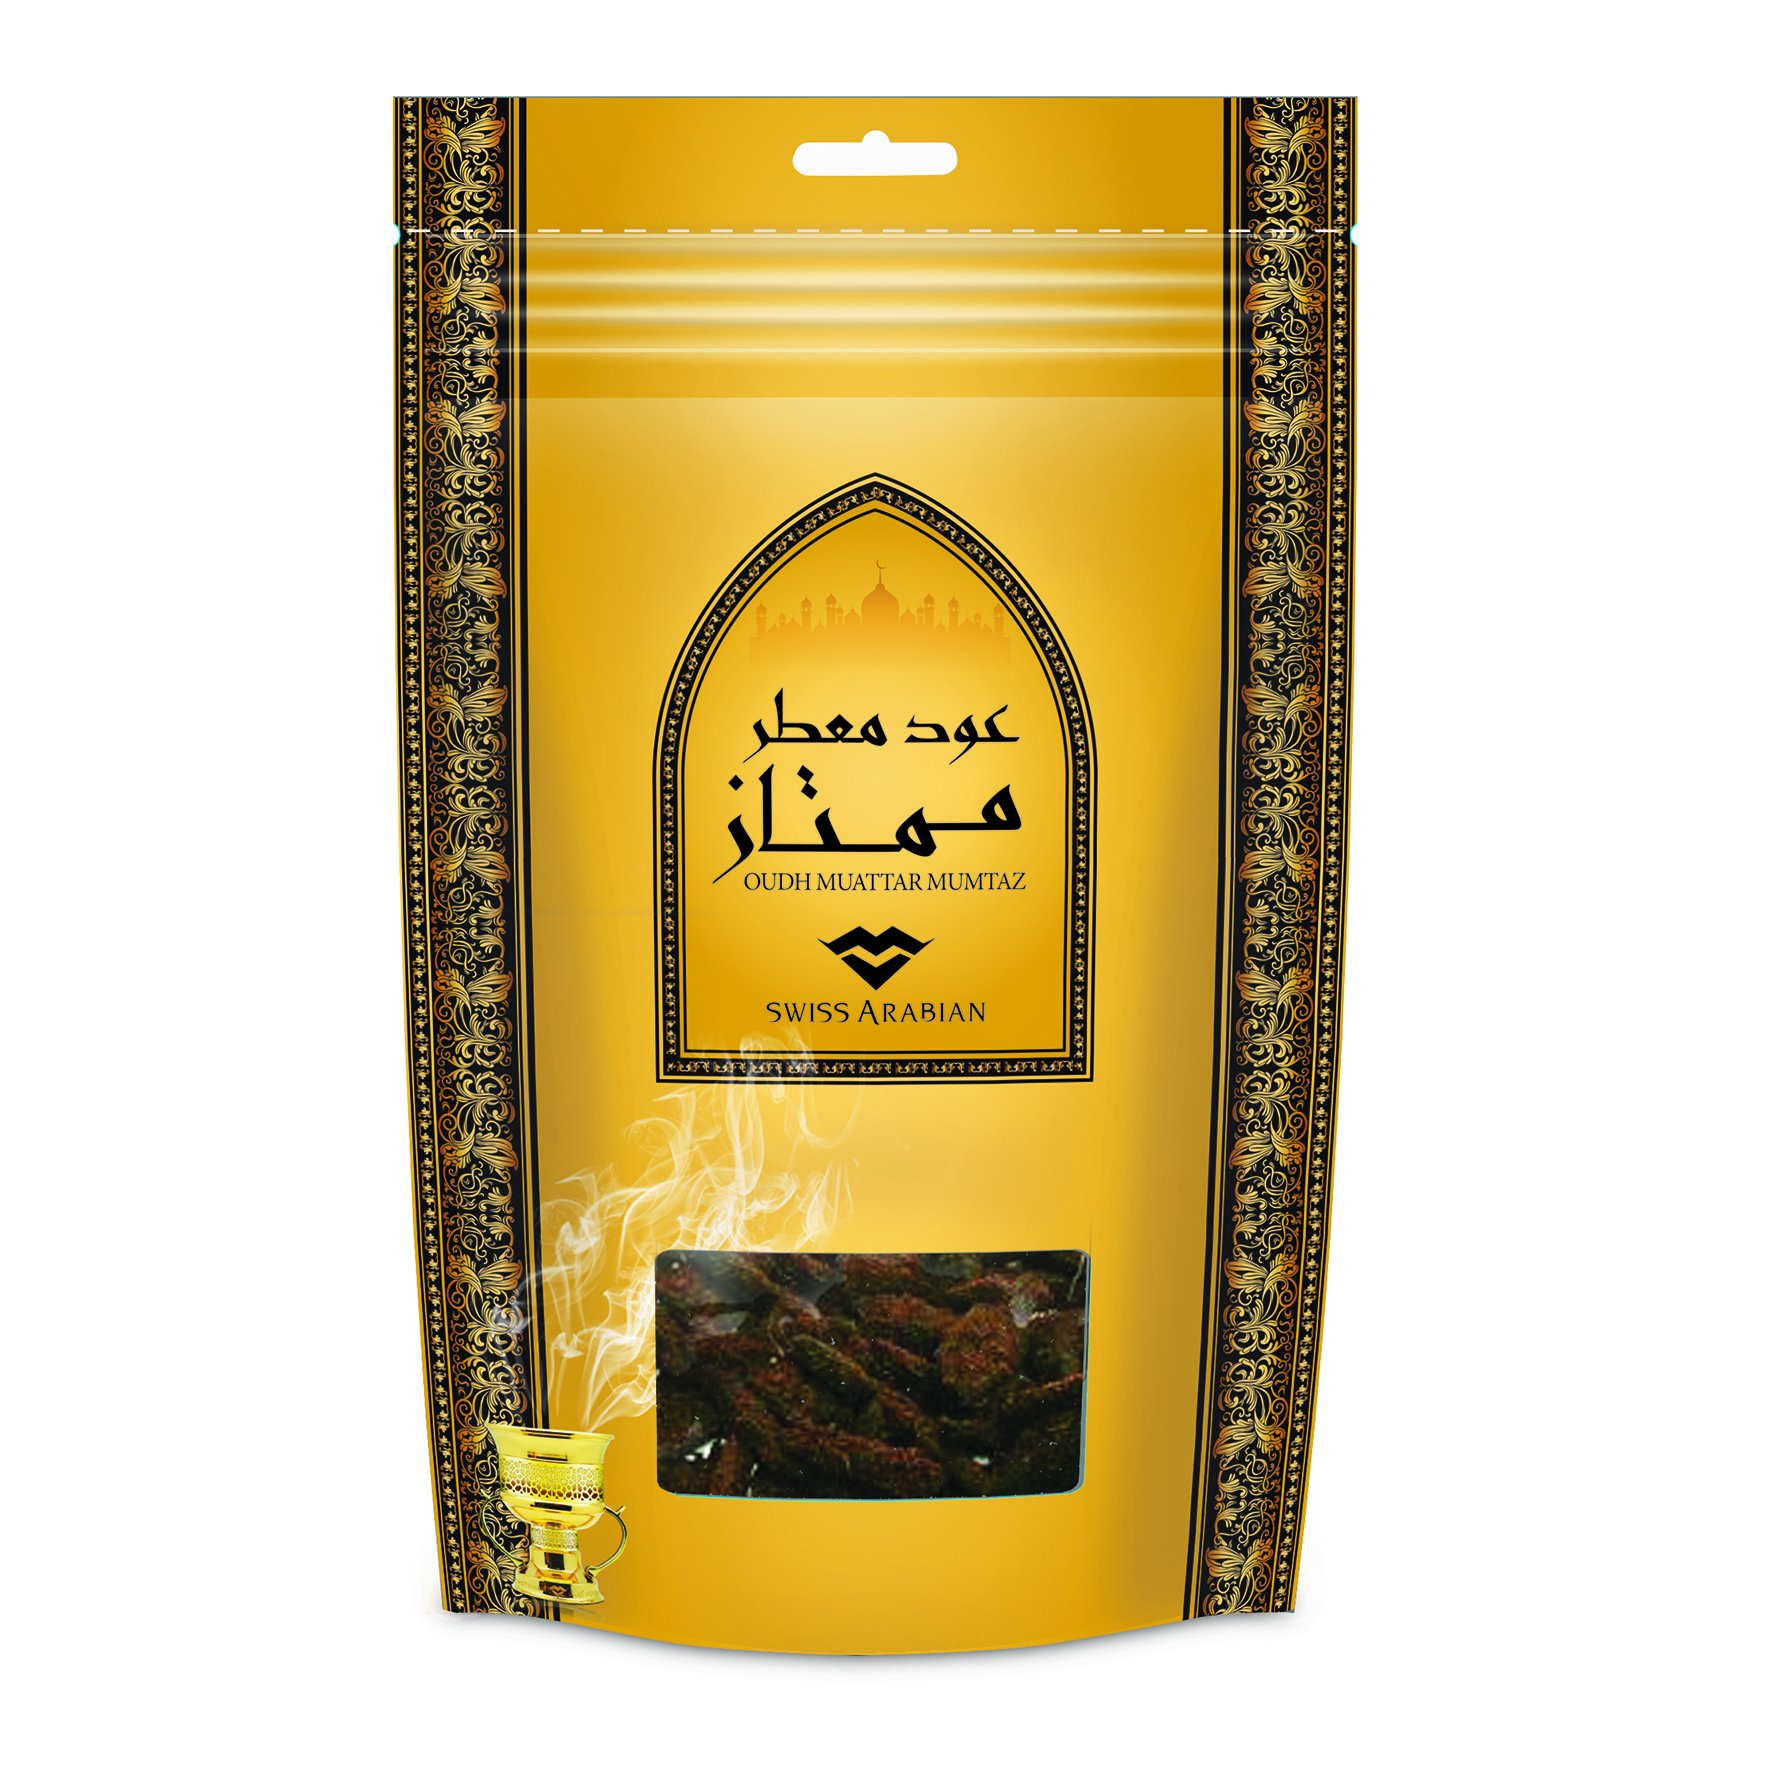 Muattar Mumtaz (250g/.55 lb) Oudh Wood Bakhoor Incense | Scented Exotic Arabic Bukhoor | Use with Traditional Middle Eastern Charcoal/Electric Burner | by Oud Perfume Artisan Swiss Arabian by SWISSARABIAN